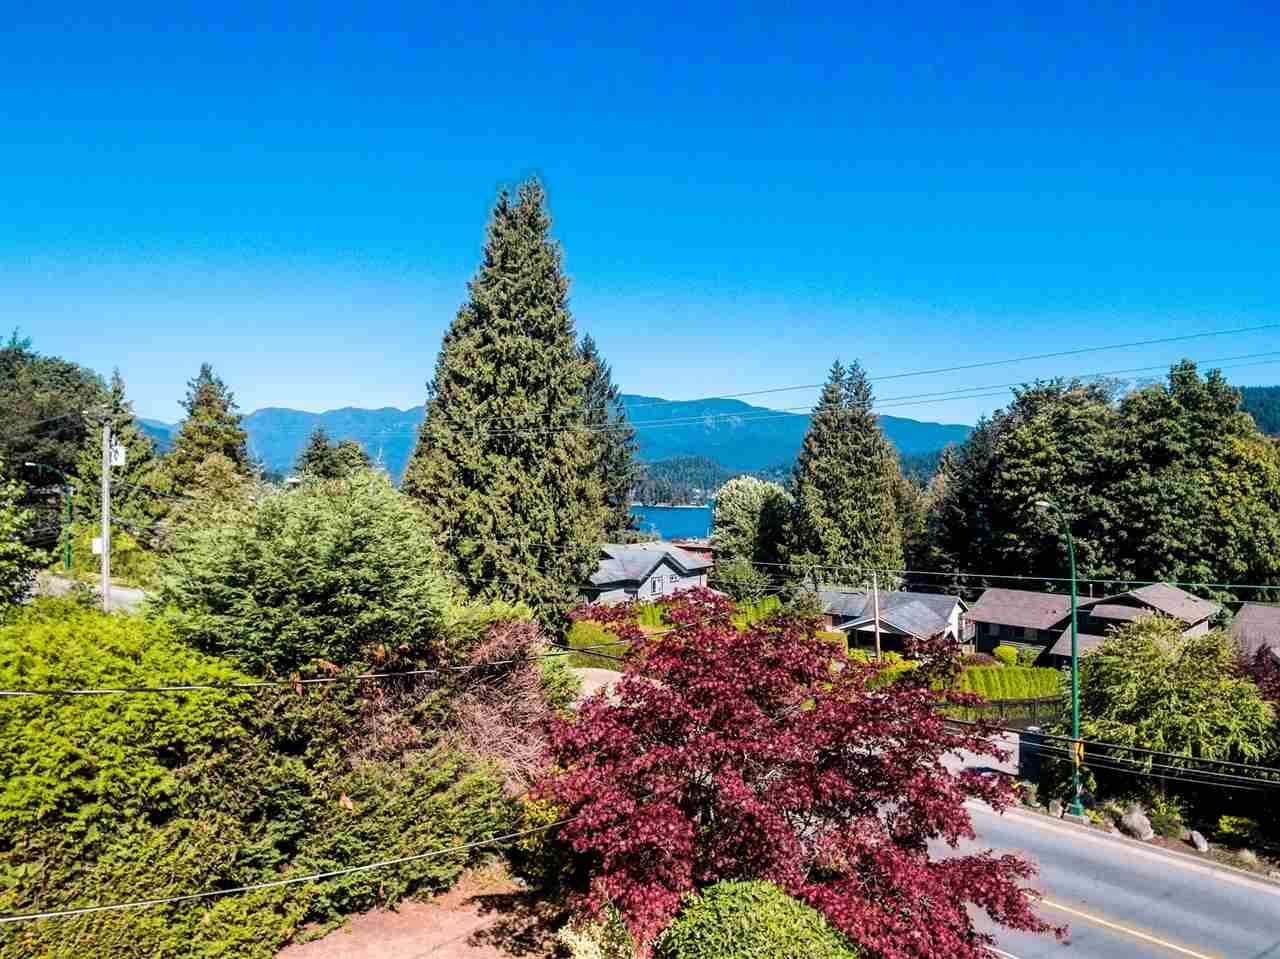 301 N DOLLARTON HIGHWAY, North Vancouver, BC, V7G 1M9 Photo 1